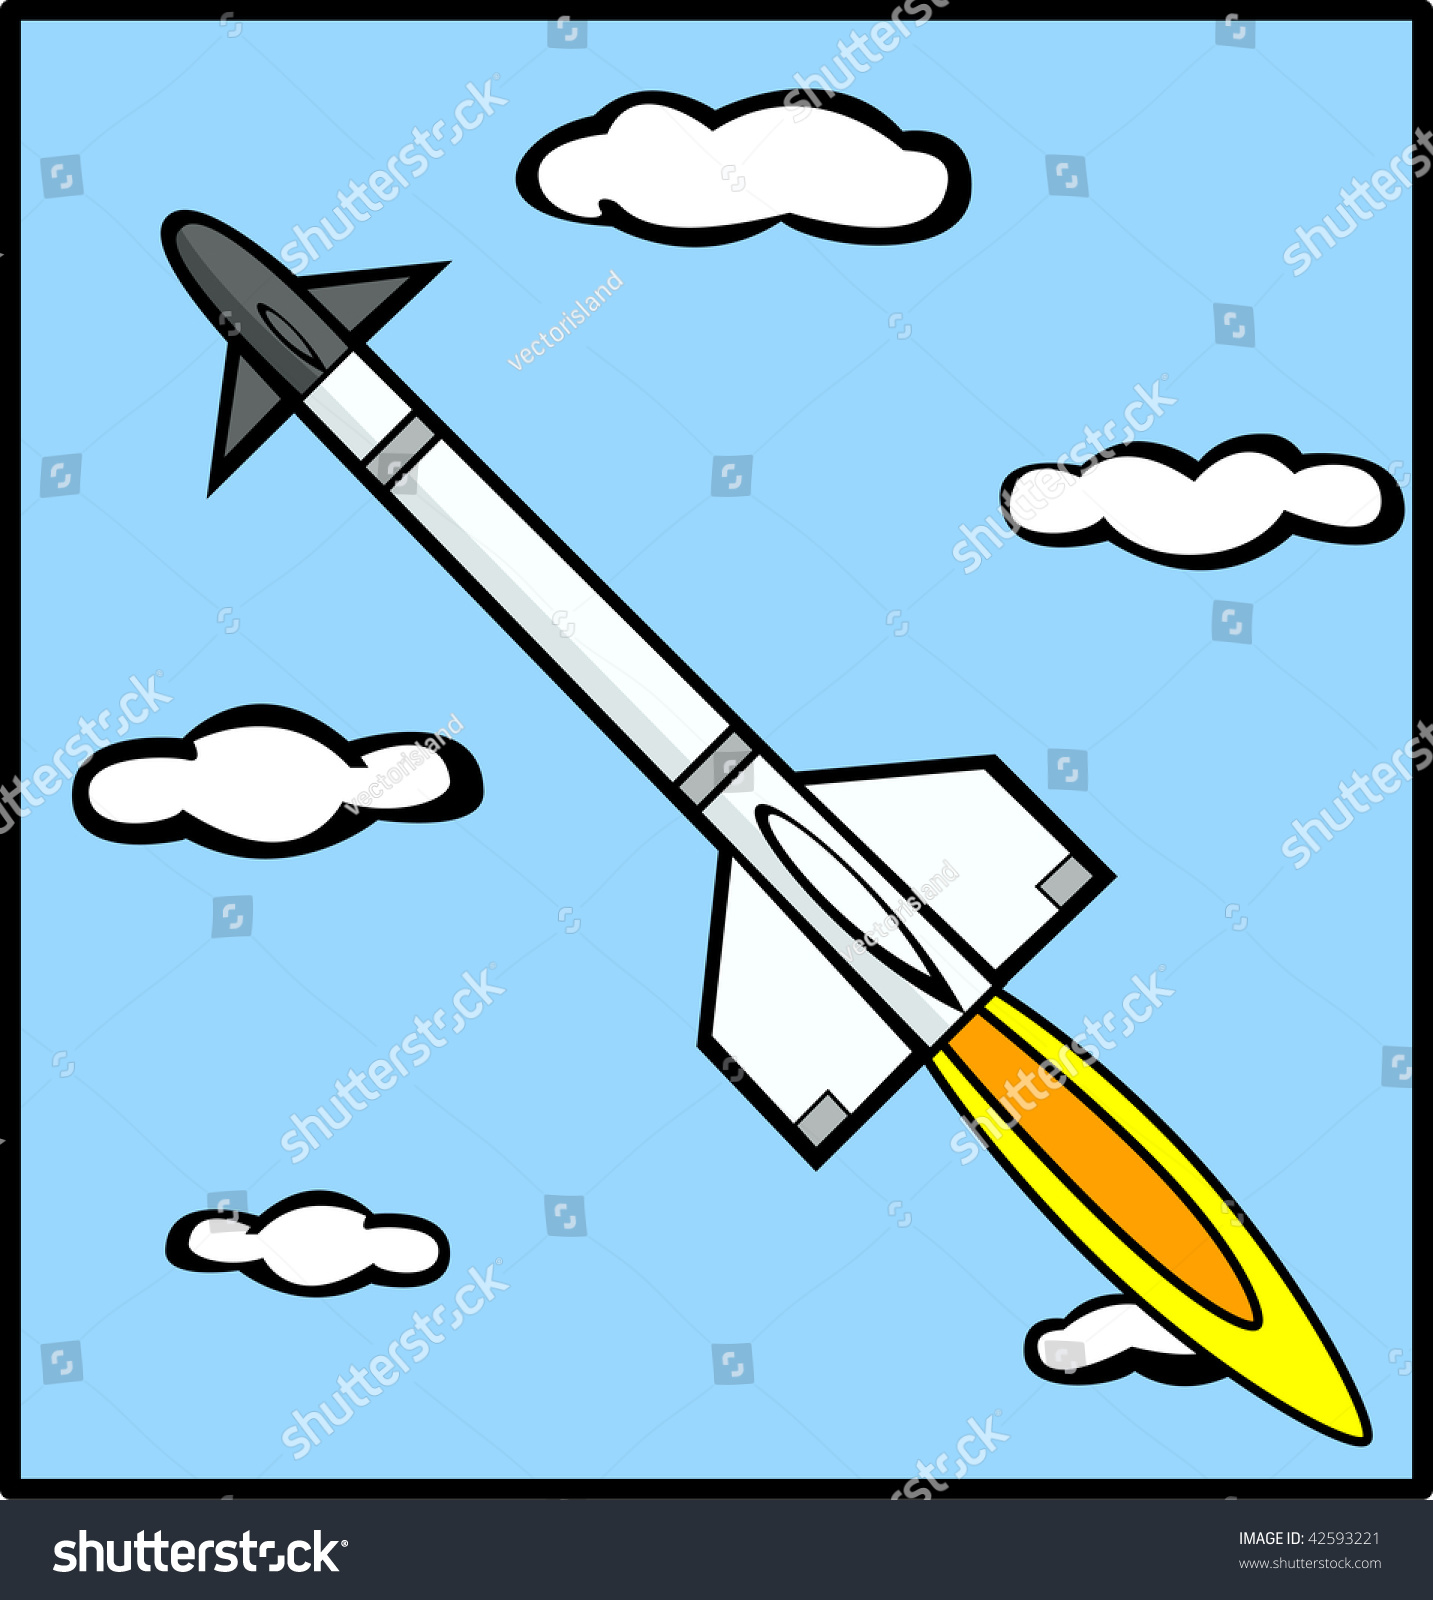 Rocket Missile Flying In The Sky Stock Photo 42593221